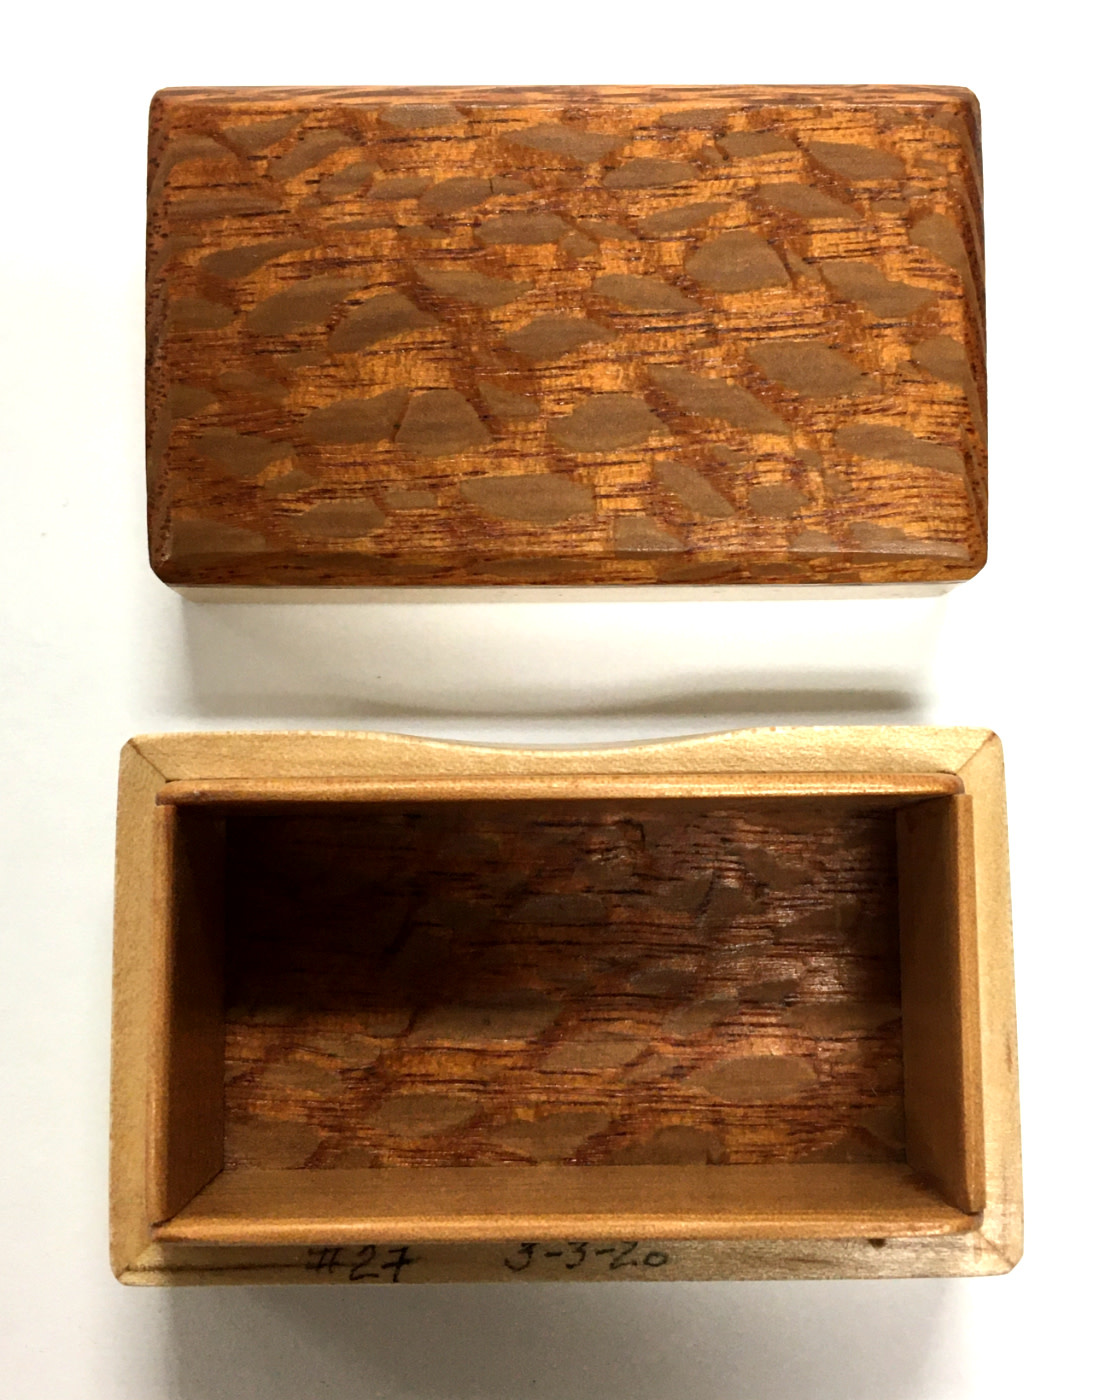 Dutch Box - Sandy's Model #27 - Lacewood & Maple